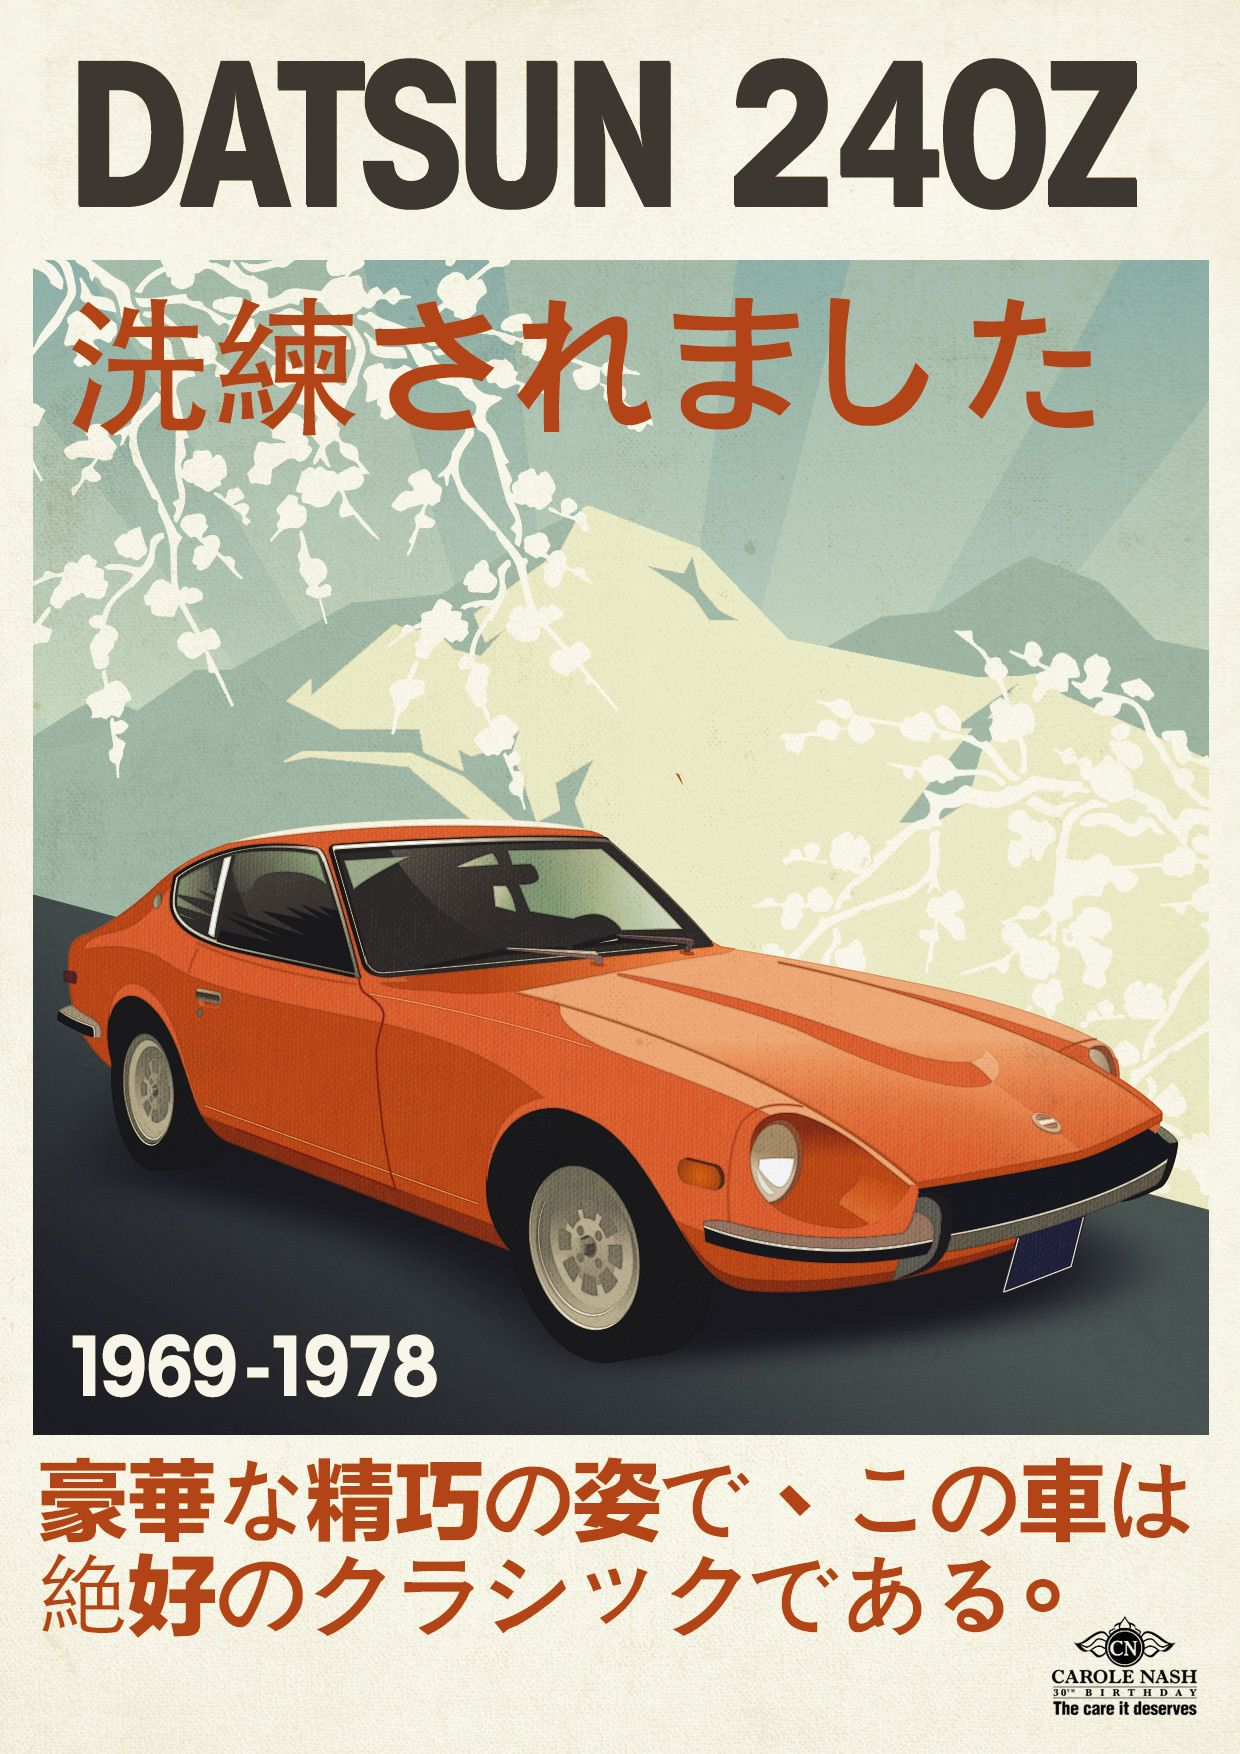 this poster | rewind | Pinterest | Car posters, Motorcycle art and Jdm